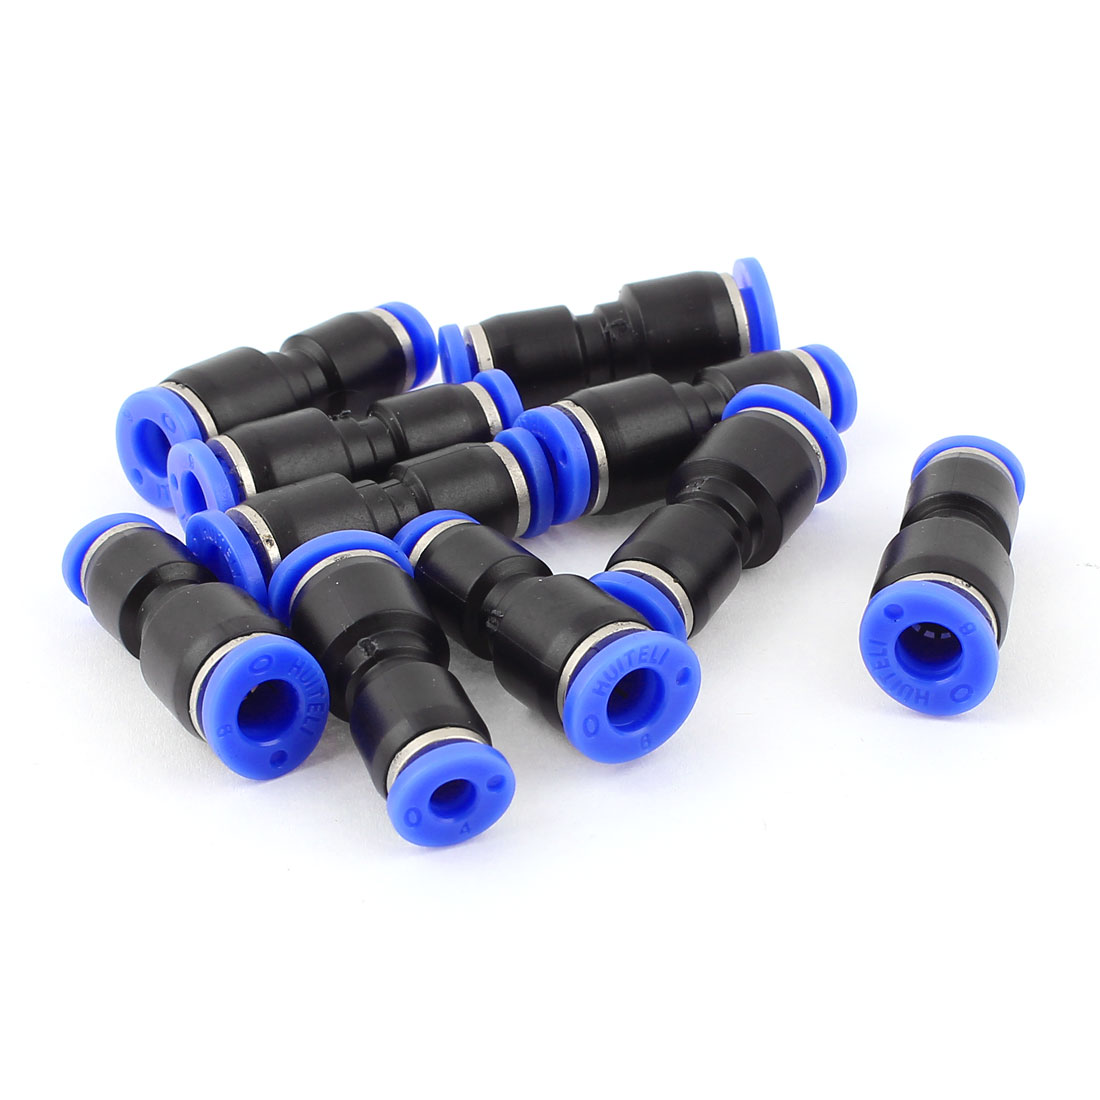 "10pcs 1/4"" to 1/8"" Tube OD 2 Way Straight Push In Pneumatic Quick Fittings"